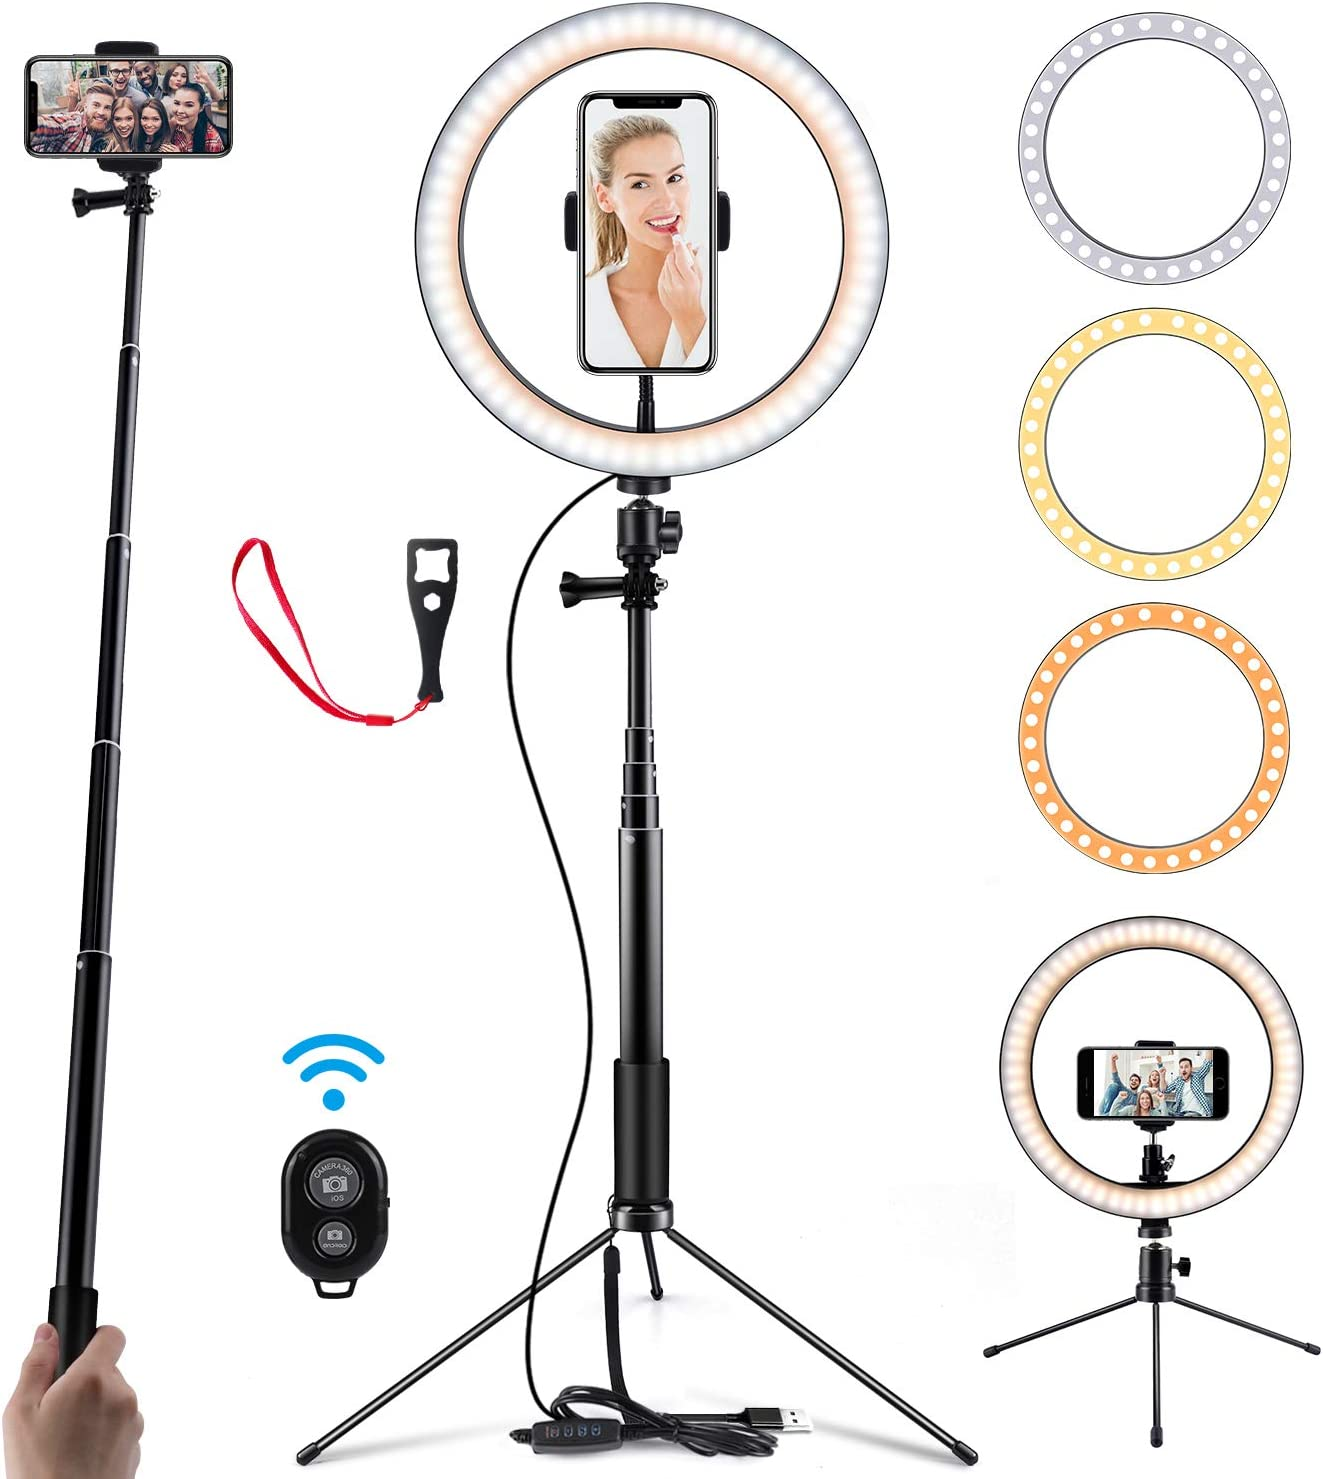 """Ring Light 10"""" Selfie Light Ring with Adjustable Bracket (14.56'' to 65'') Remote Control 3 Modes & 10 Brightness 120 Bulbs Dimmable Desktop Ringlight for YouTube Video/Live Stream/Makeup/Photography : Camera & Photo"""